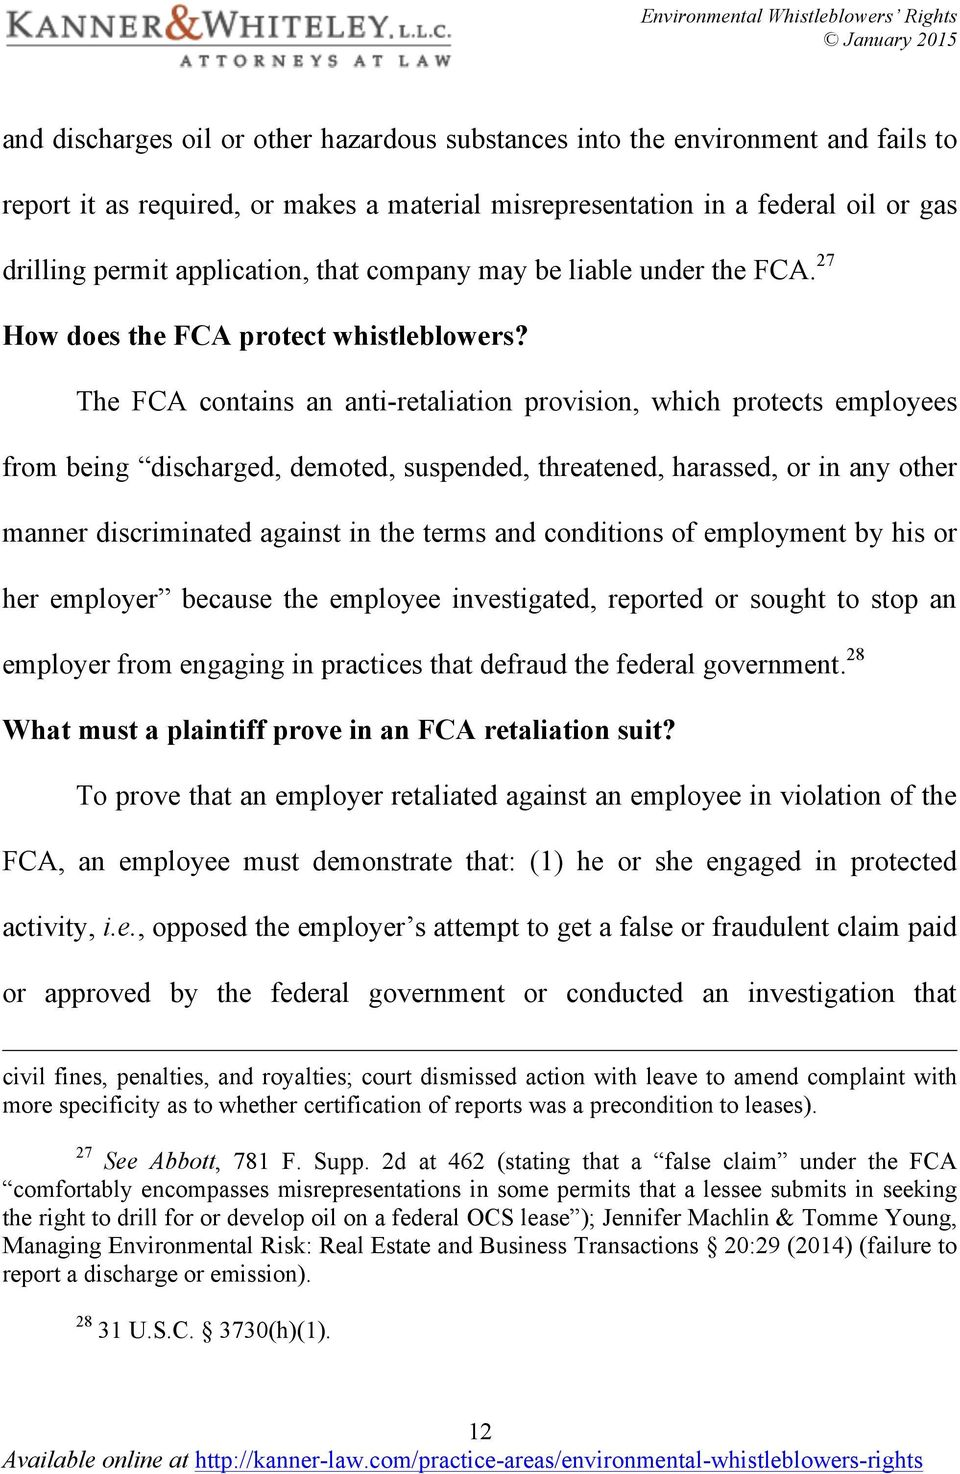 The FCA contains an anti-retaliation provision, which protects employees from being discharged, demoted, suspended, threatened, harassed, or in any other manner discriminated against in the terms and